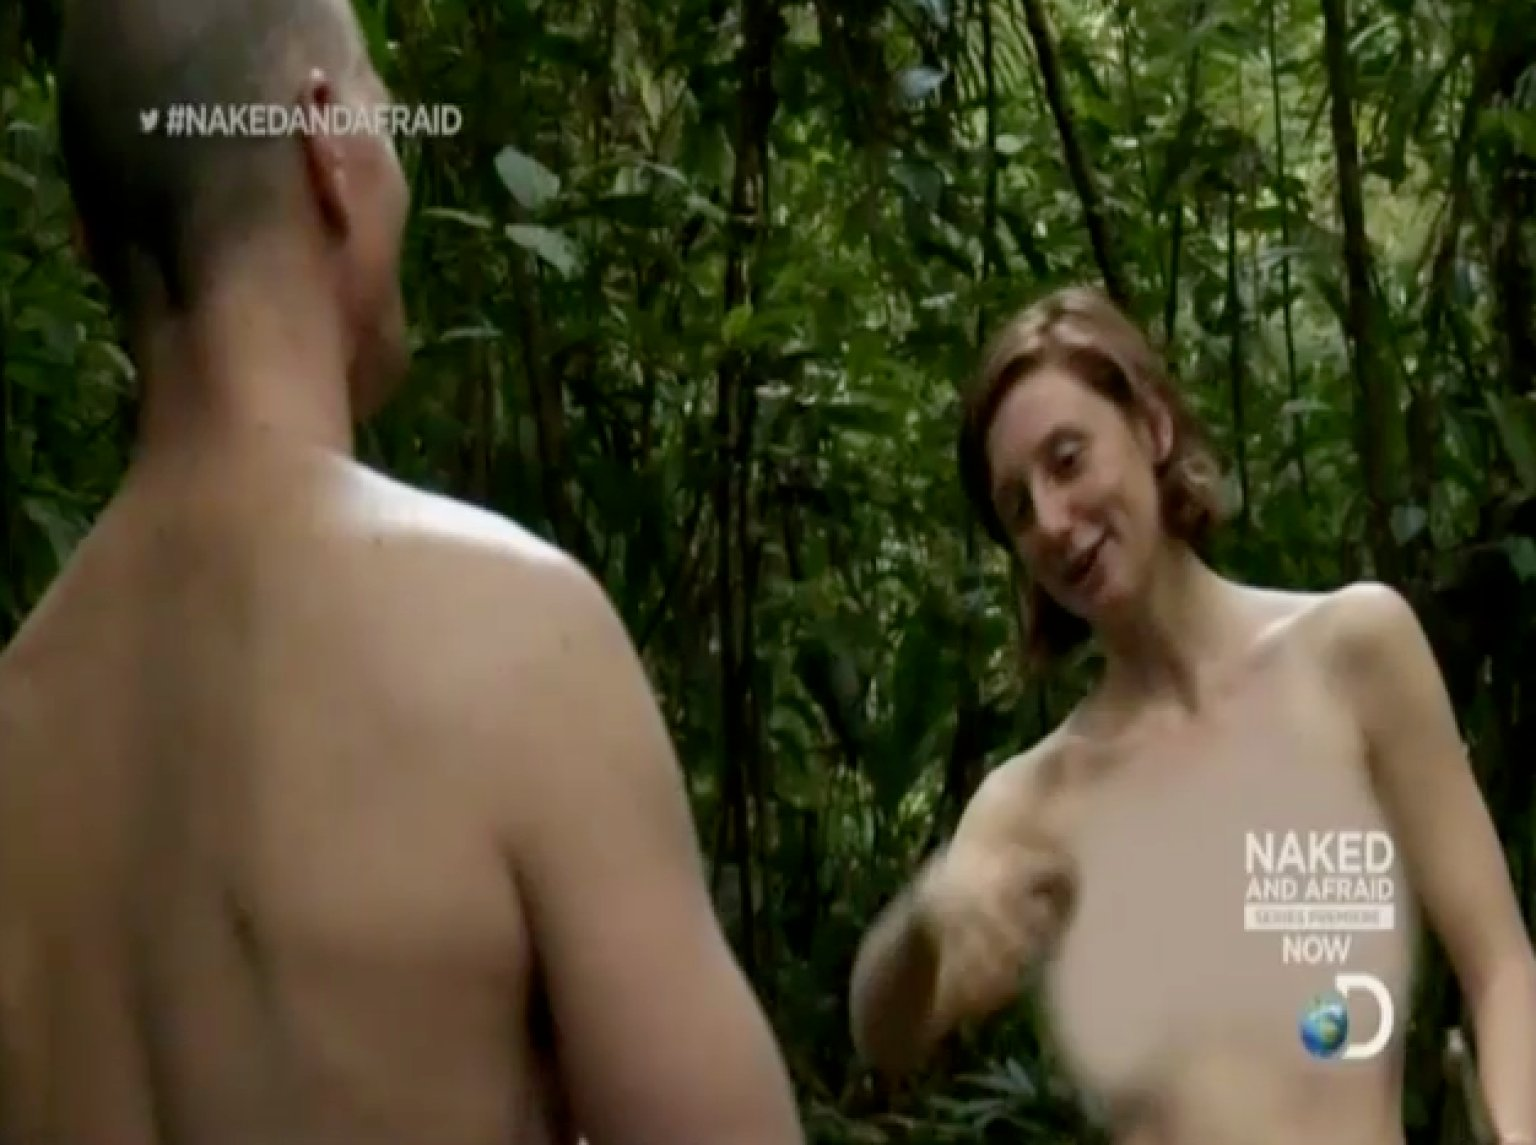 Women of naked and afraid nude